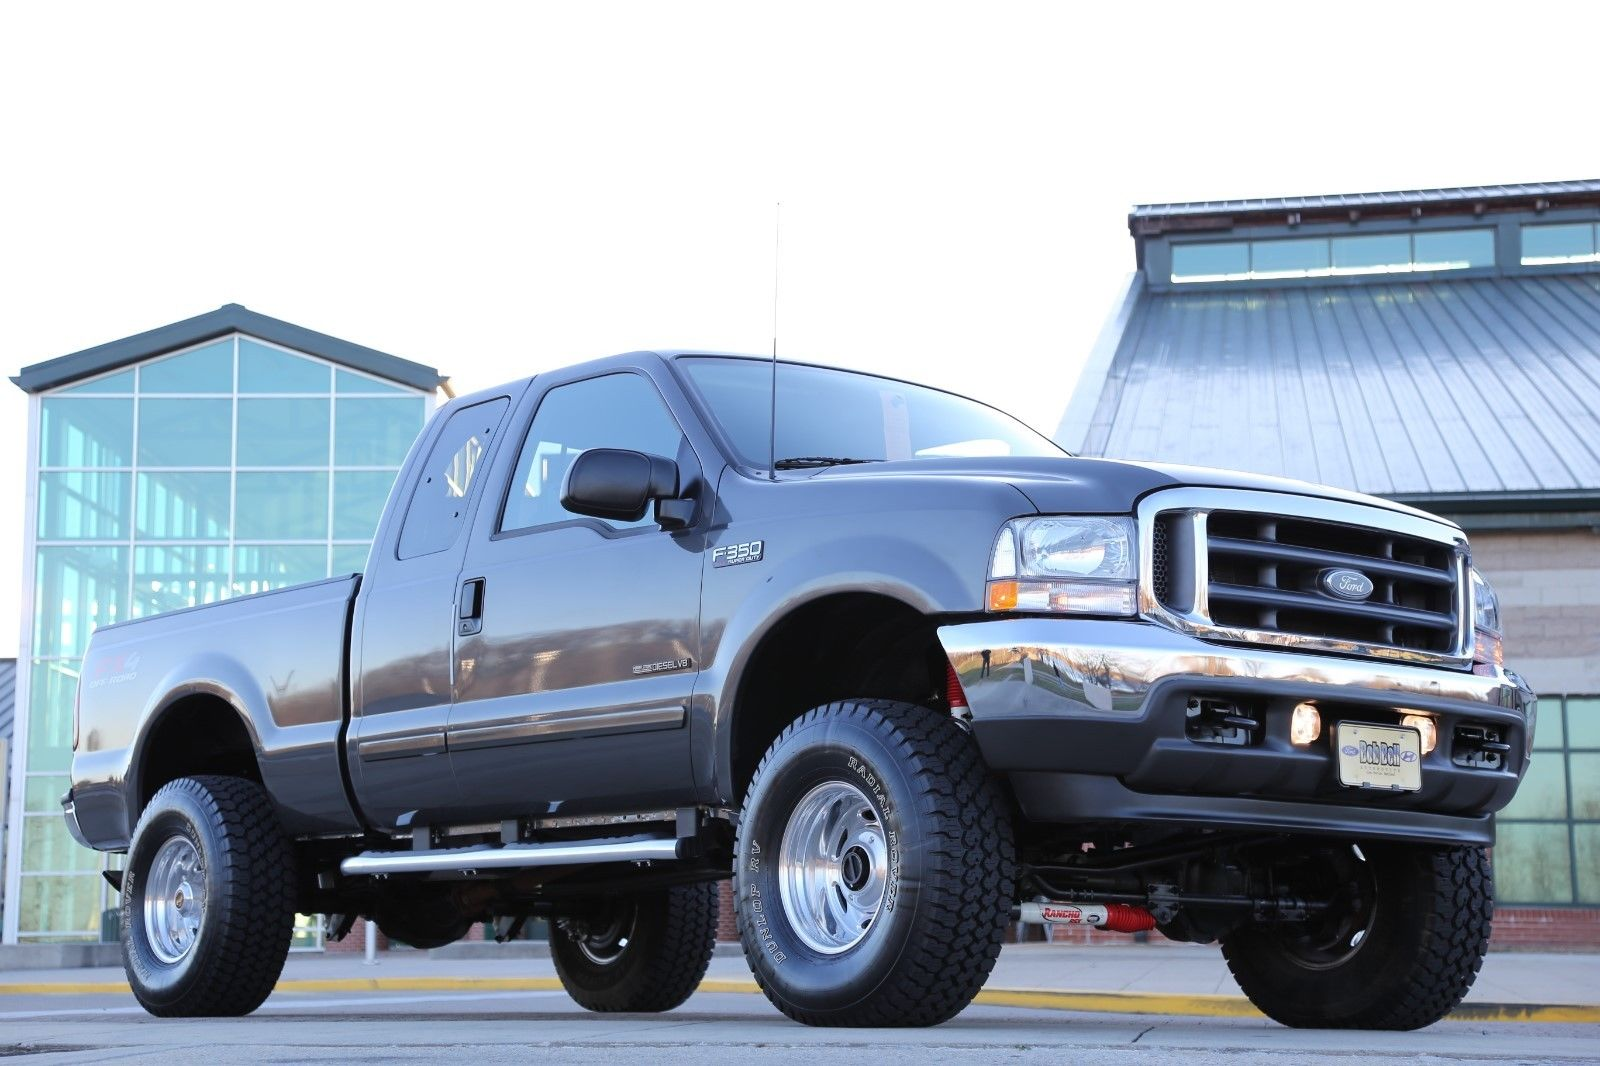 last year ford made the 7.3 powerstroke